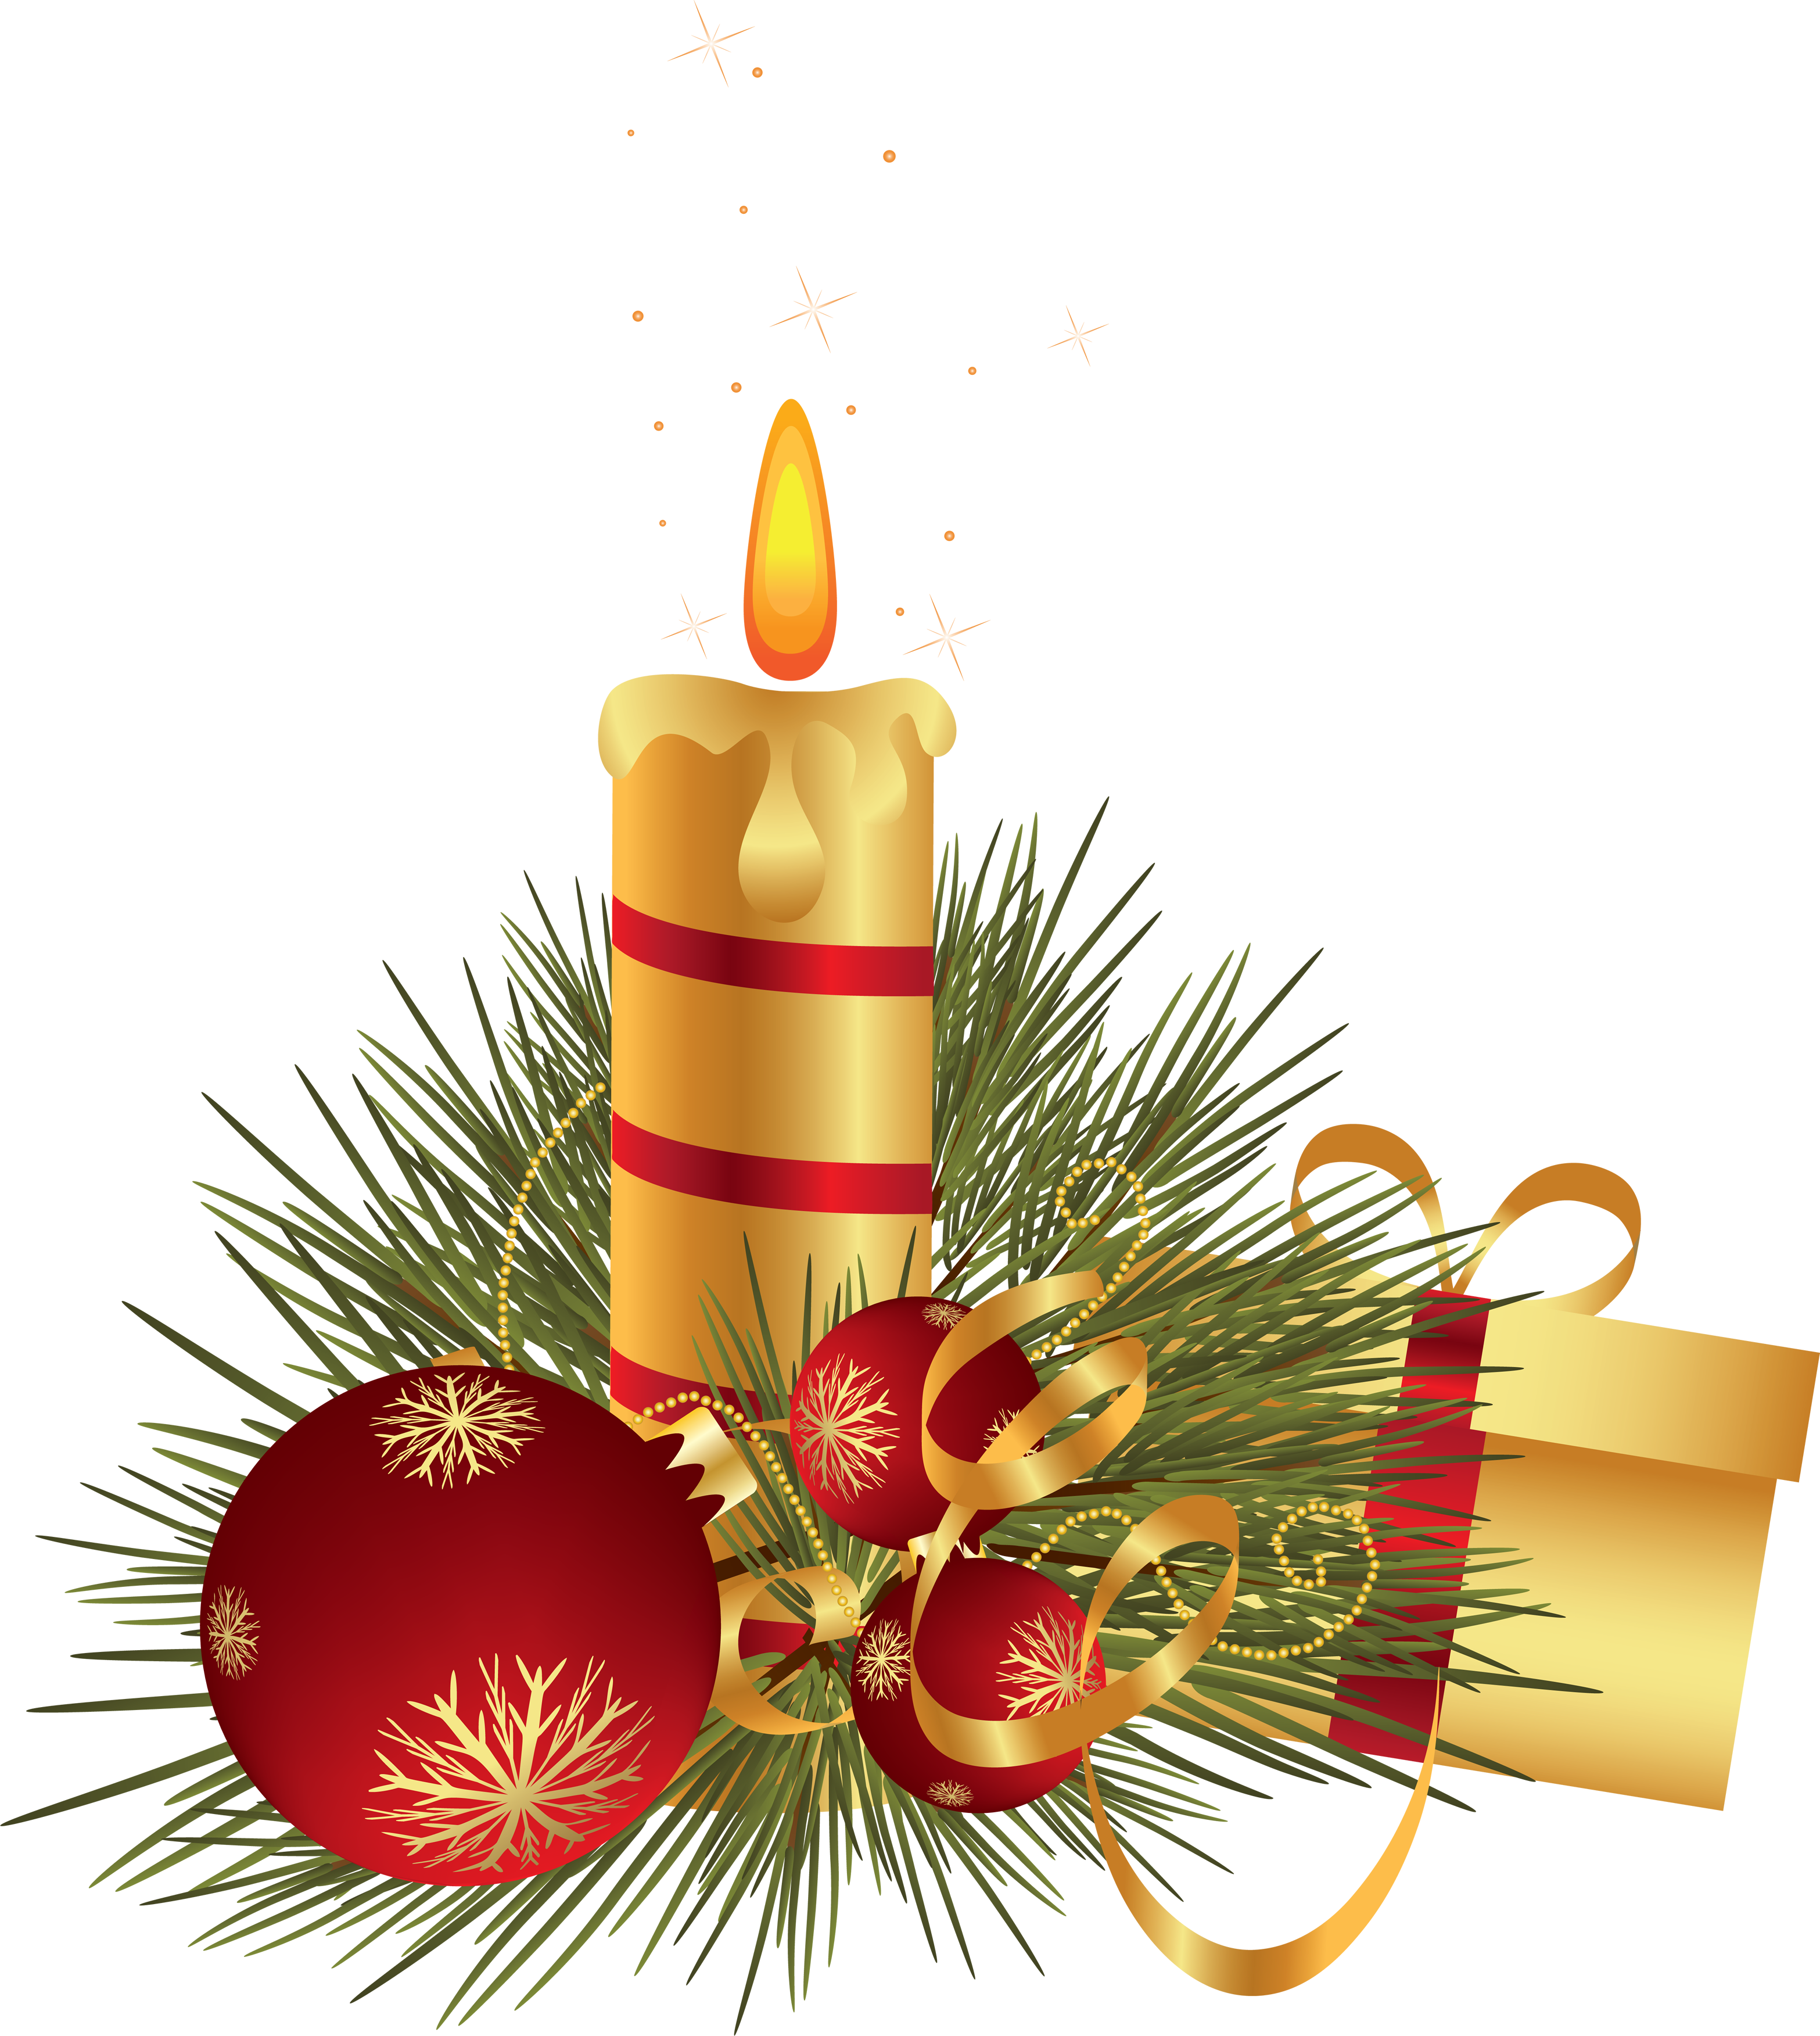 Christmas Candle with Gift and Baubles PNG Image